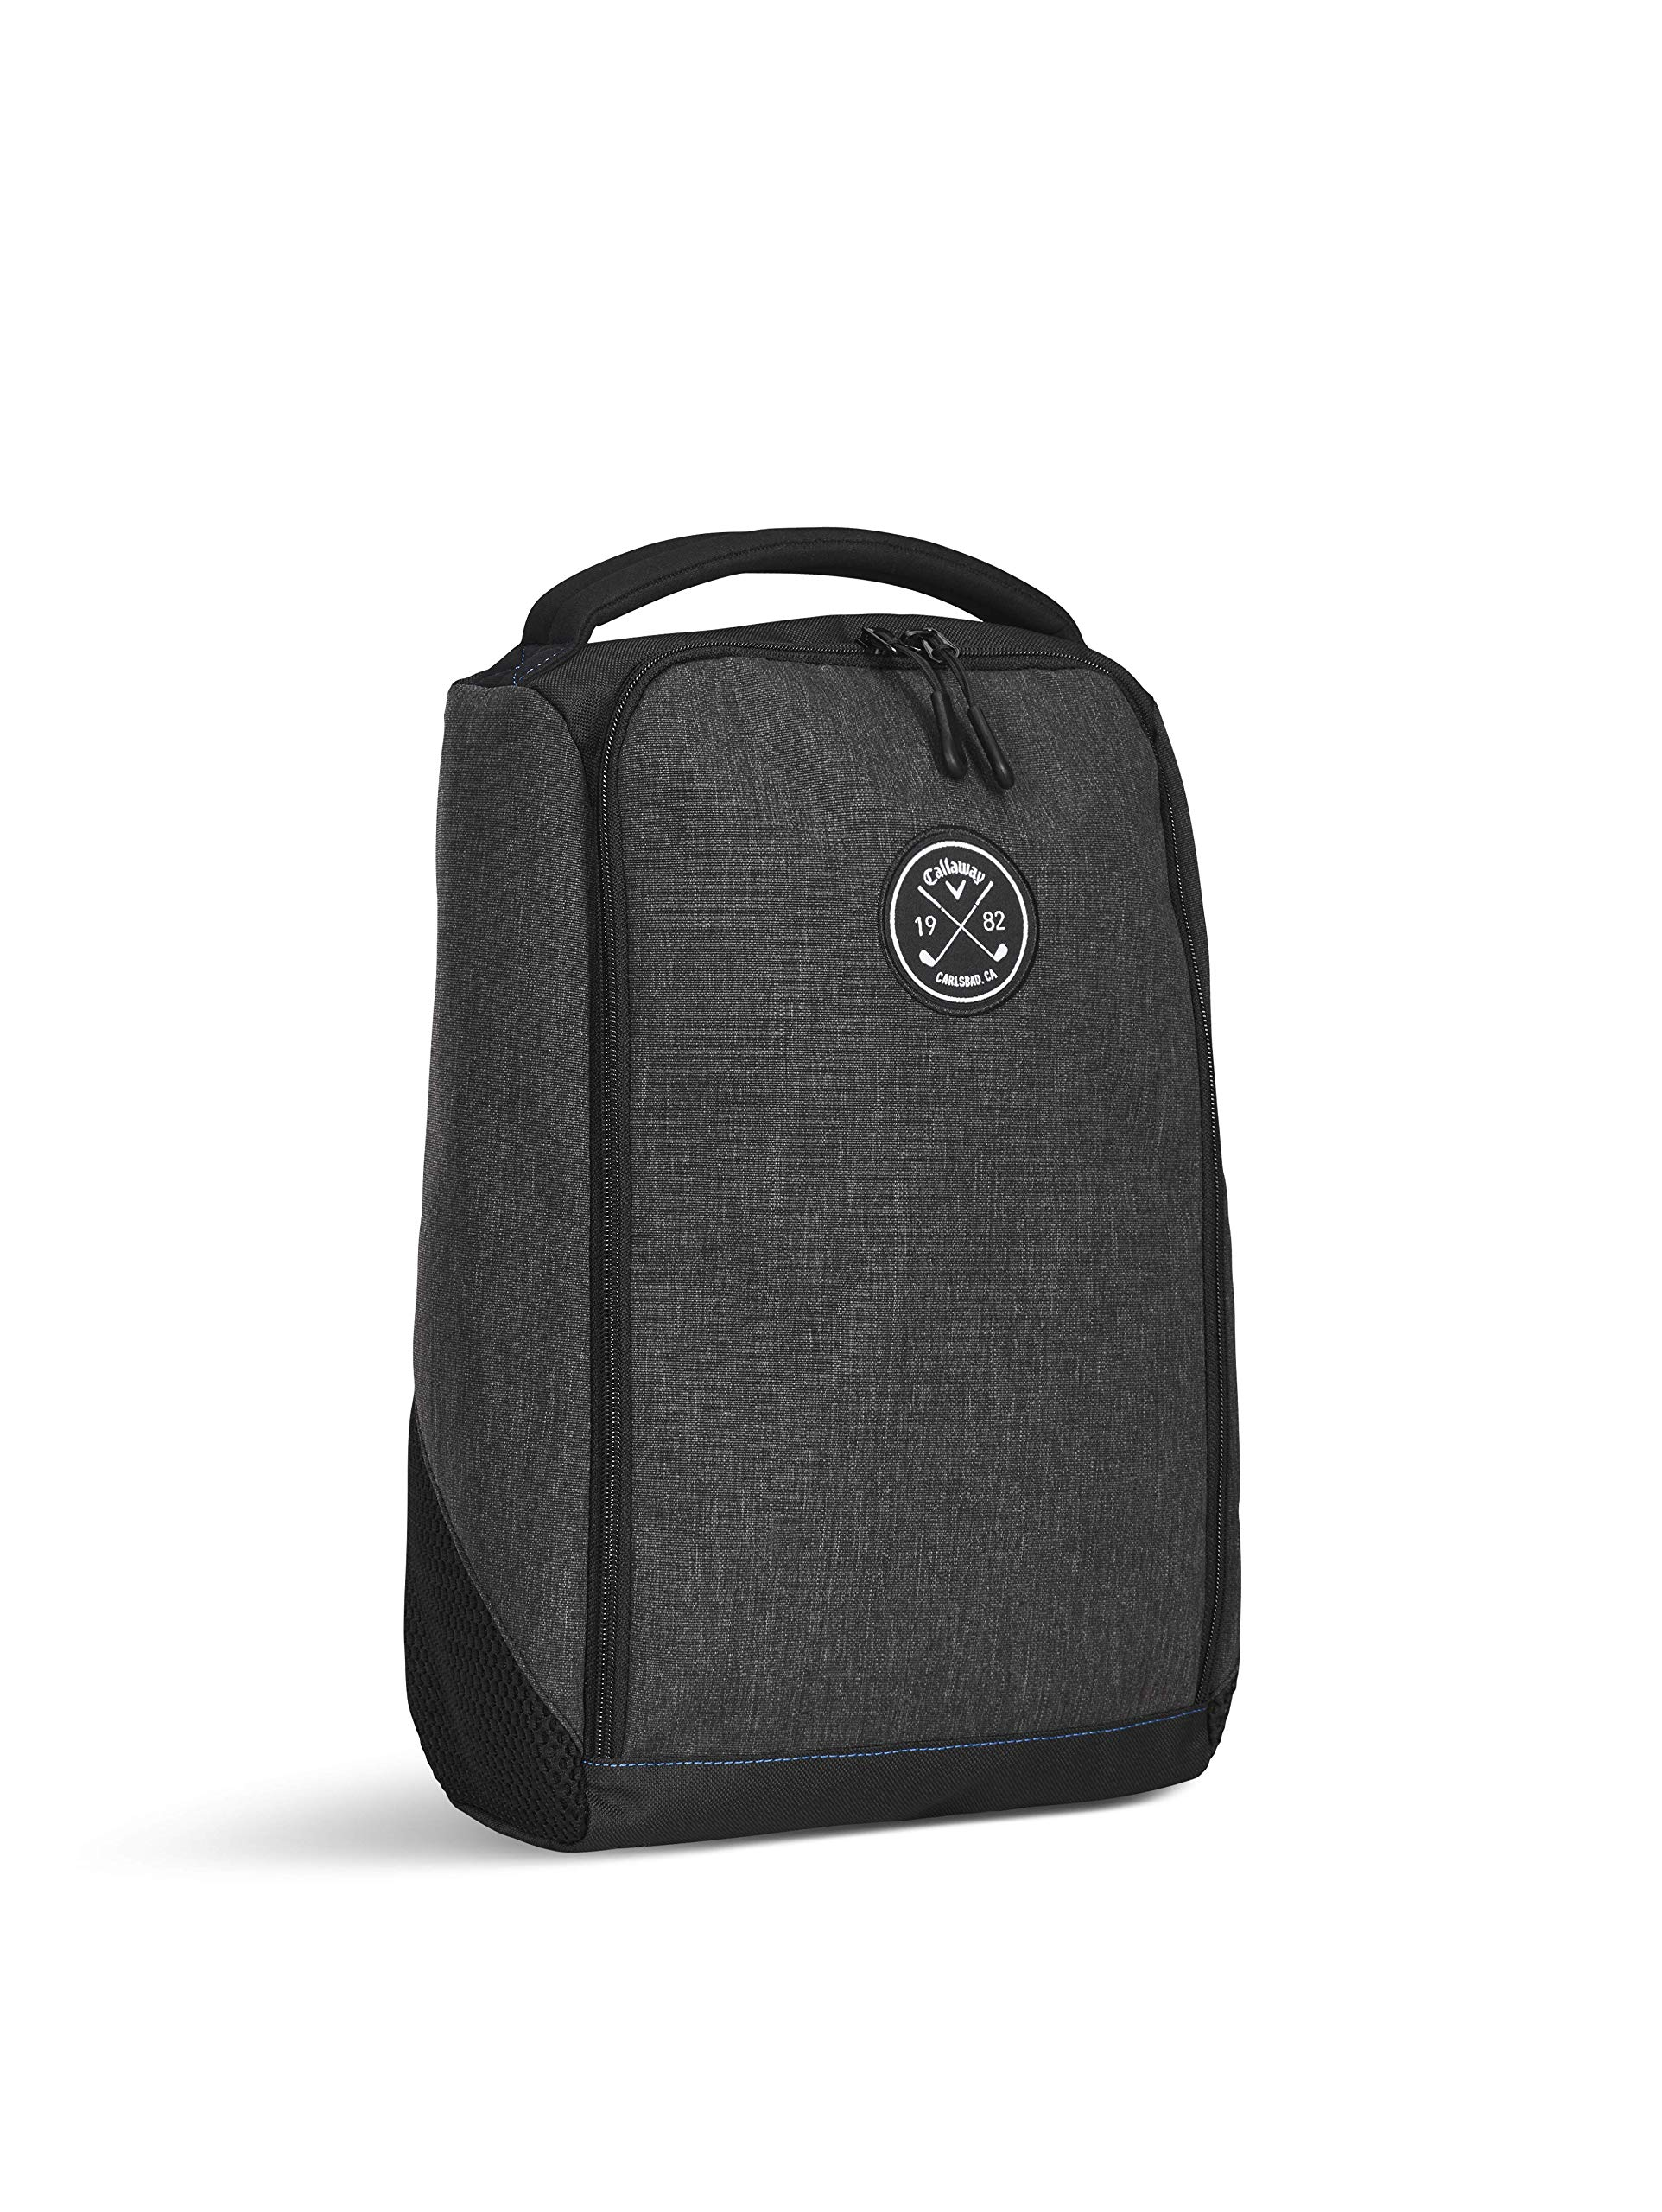 Callaway Men's Clubhouse Shoe Bag, Black, One Size Callaway Padded Comfort Grip Handle Dual Side Air Vents Easy Glide Zipper 1